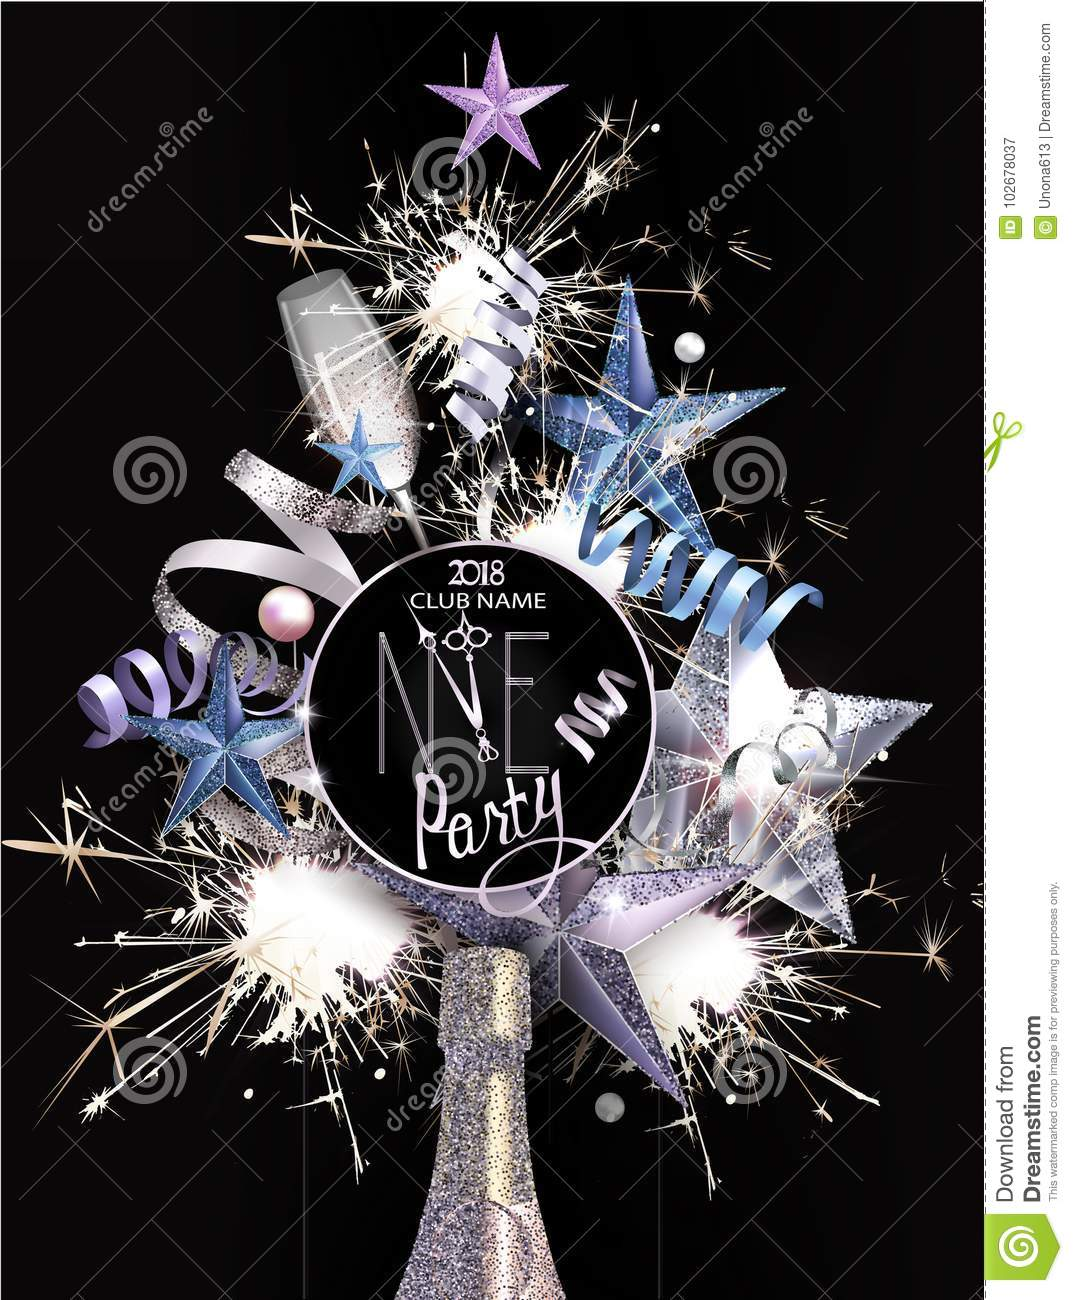 new year party invitation card with christmas decoration objects arranged in shape of christmas tree